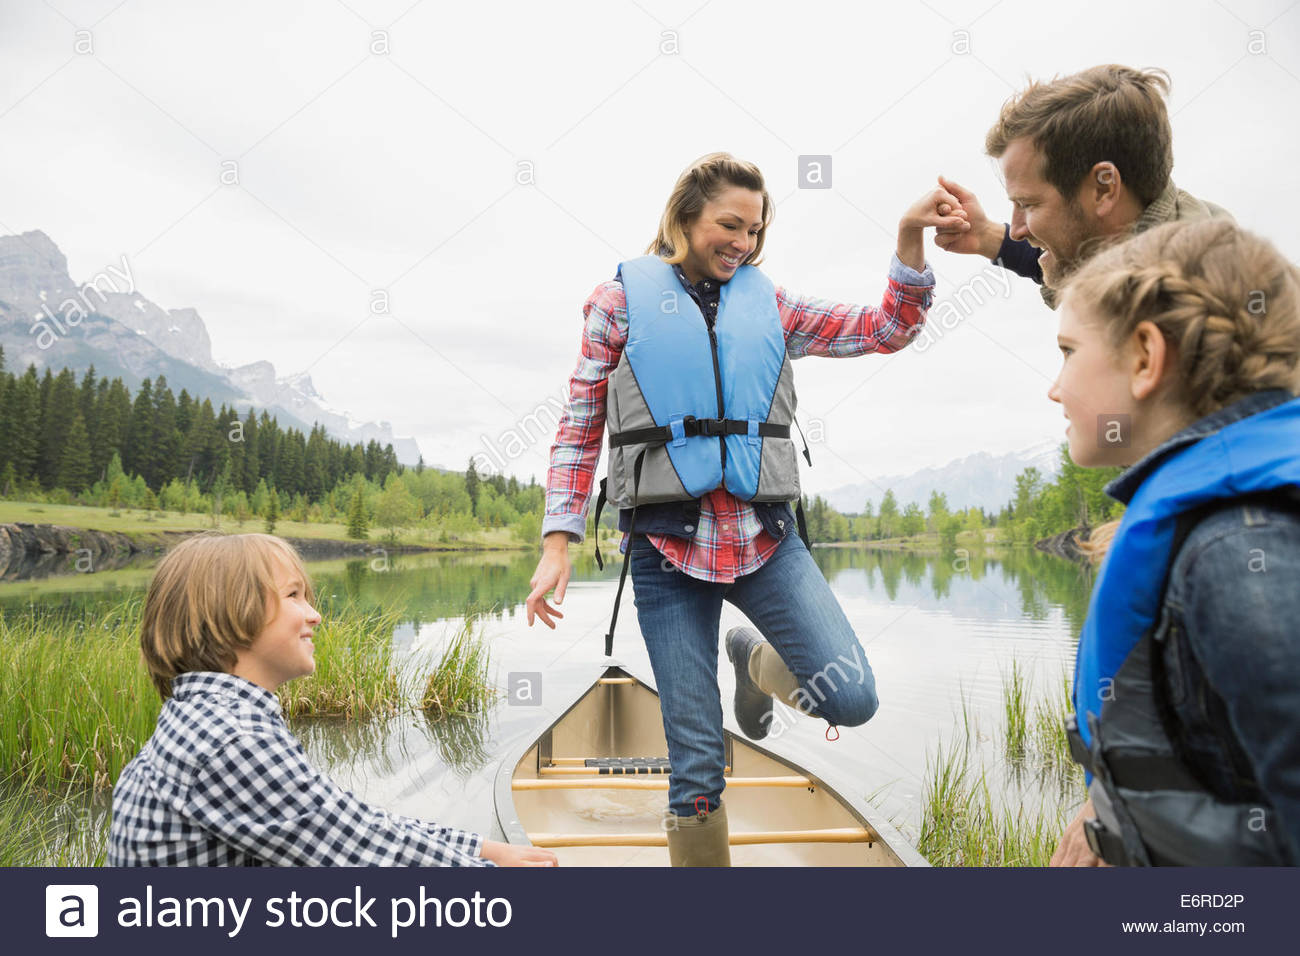 Husband helping wife from canoe in still lake - Stock Image